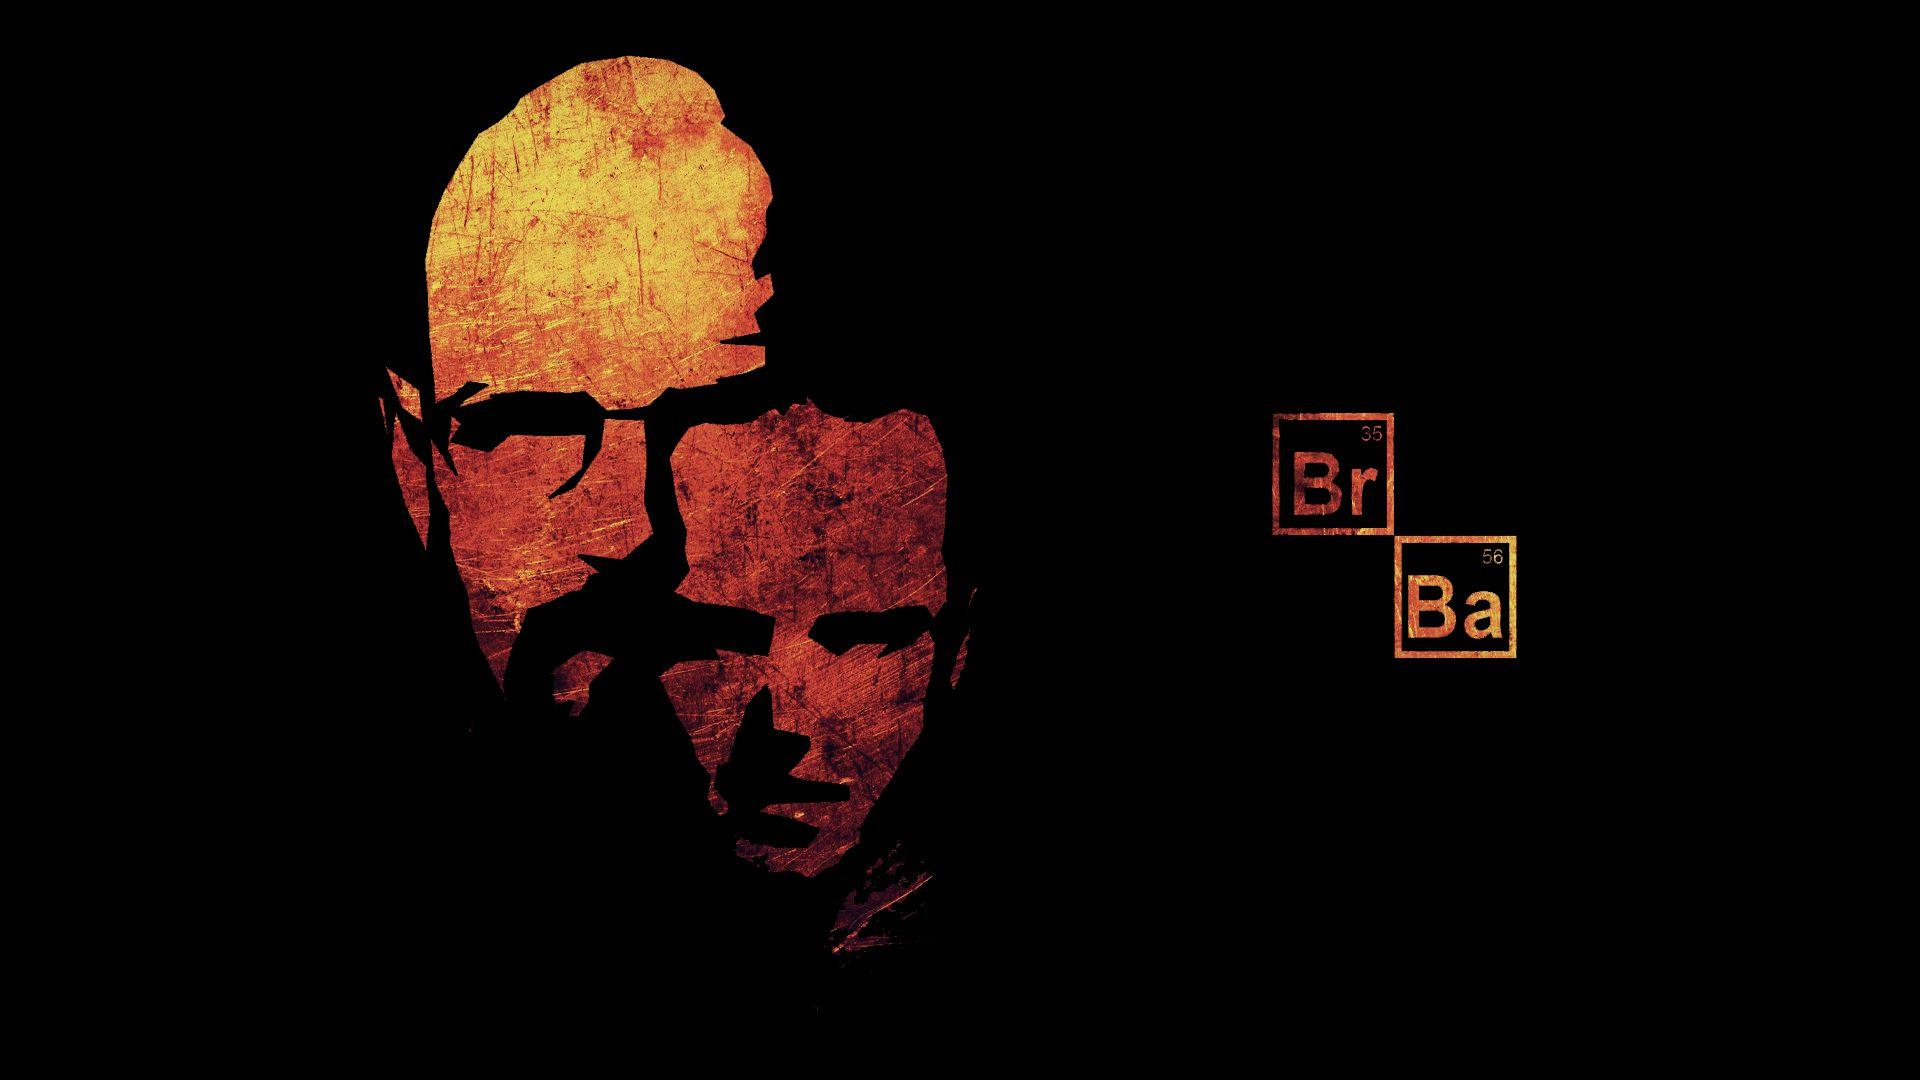 breaking bad 50 wallpapers - photo #19